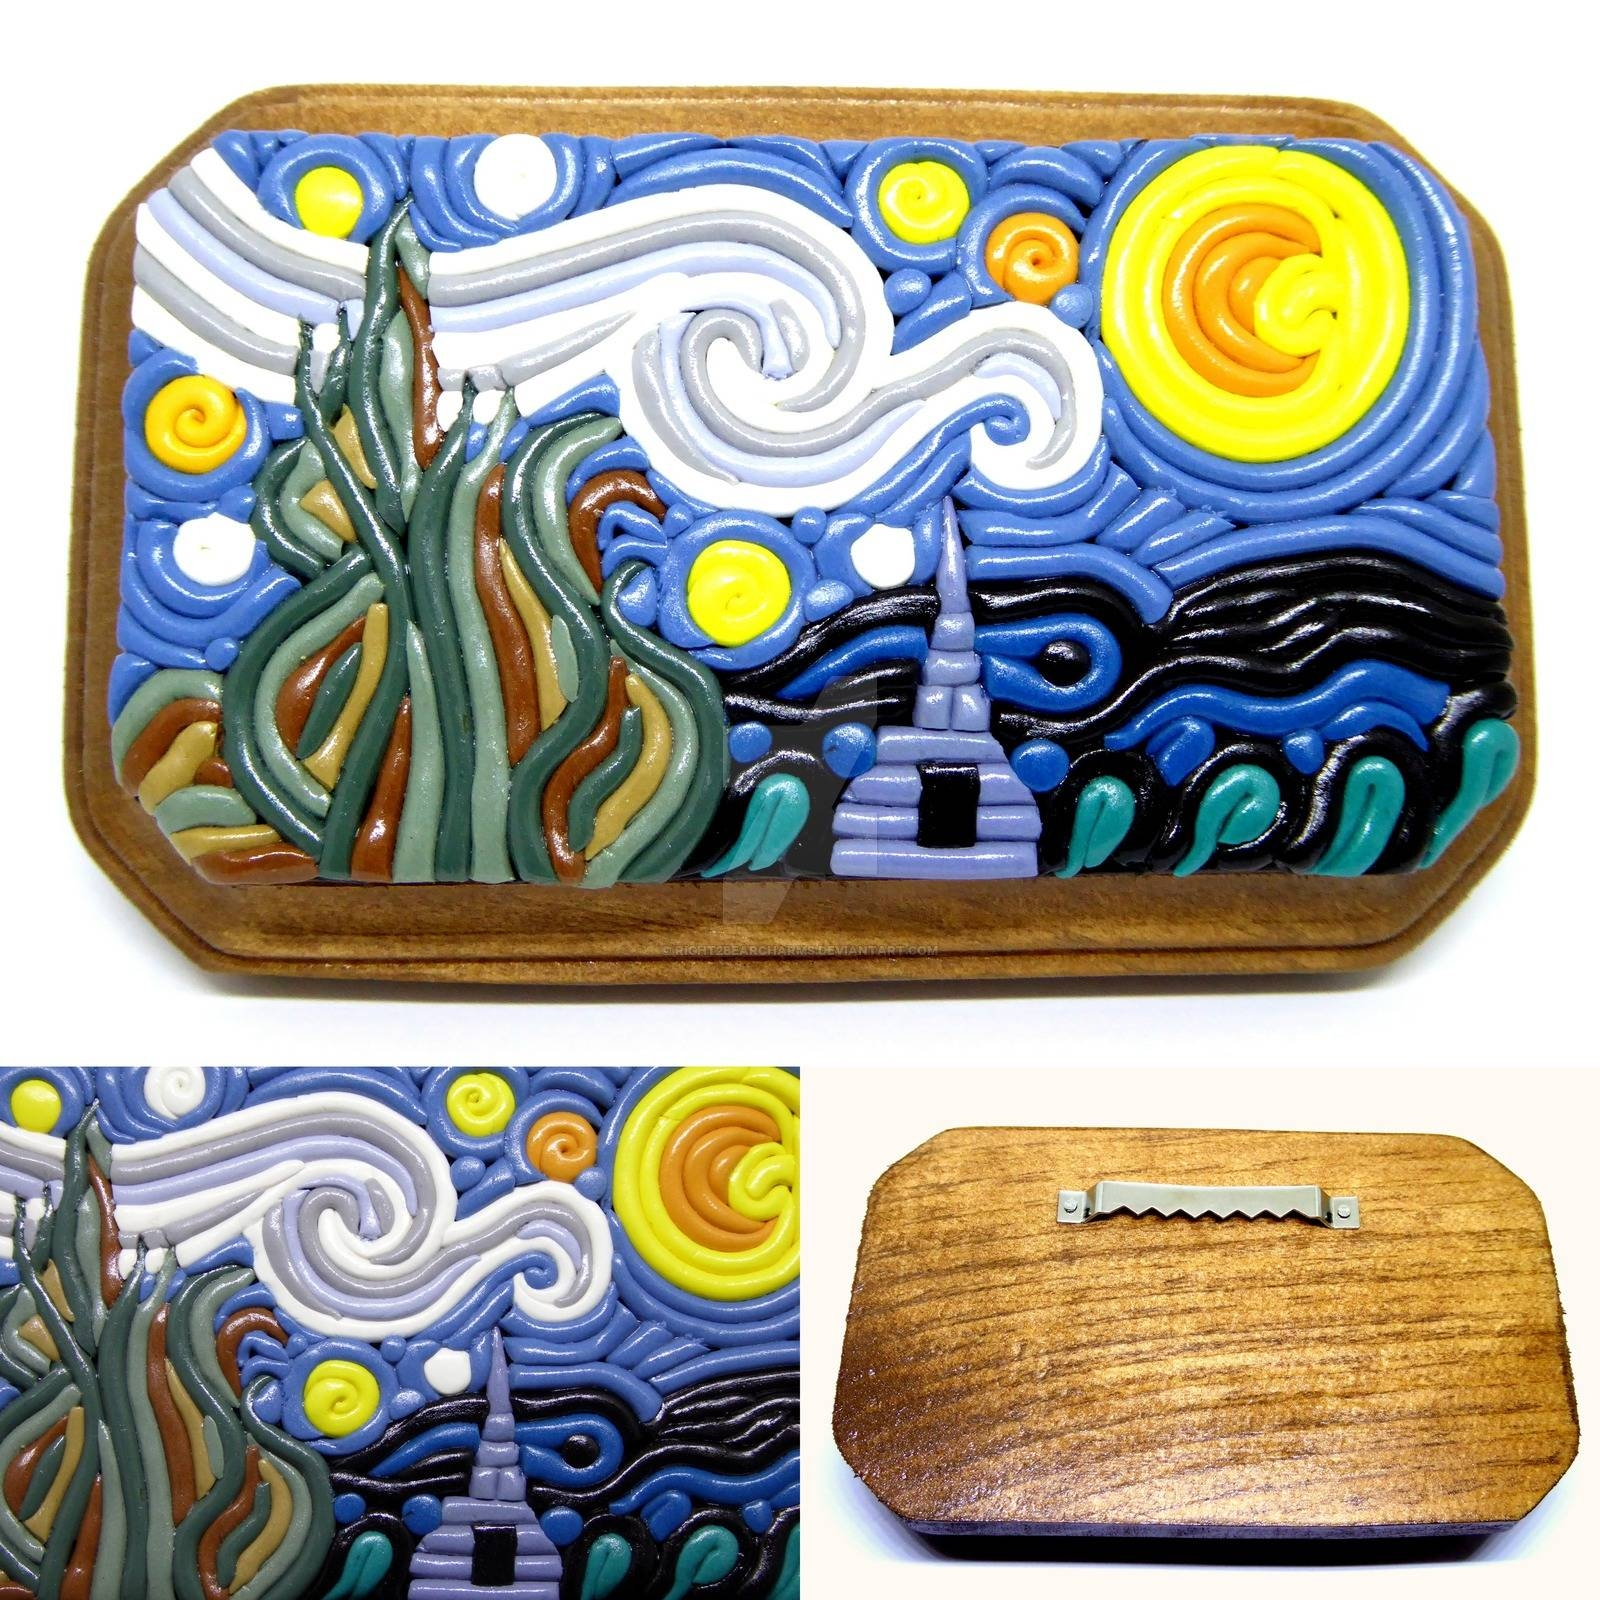 The Starry Night' Polymer Clay Wall Artright2bearcharms On Within Current Polymer Clay Wall Art (View 12 of 20)